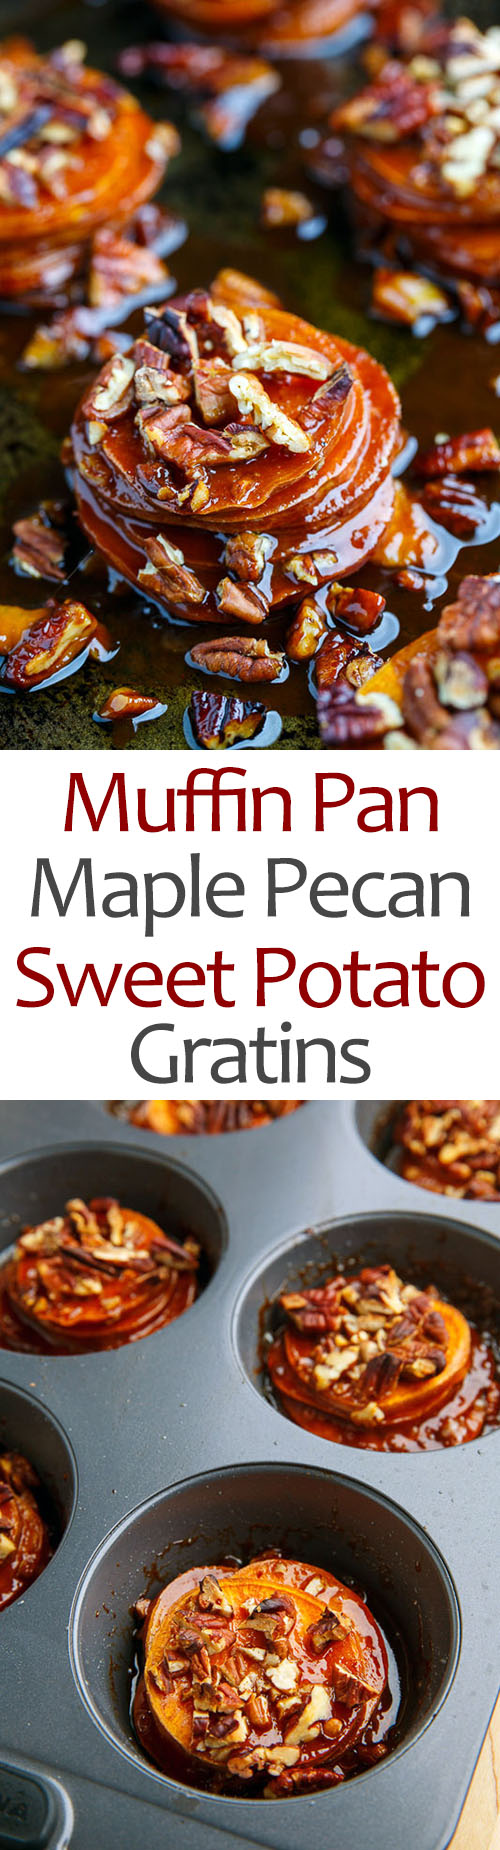 Muffin Pan Maple Pecan Sweet Potato Gratins on Closet Cooking